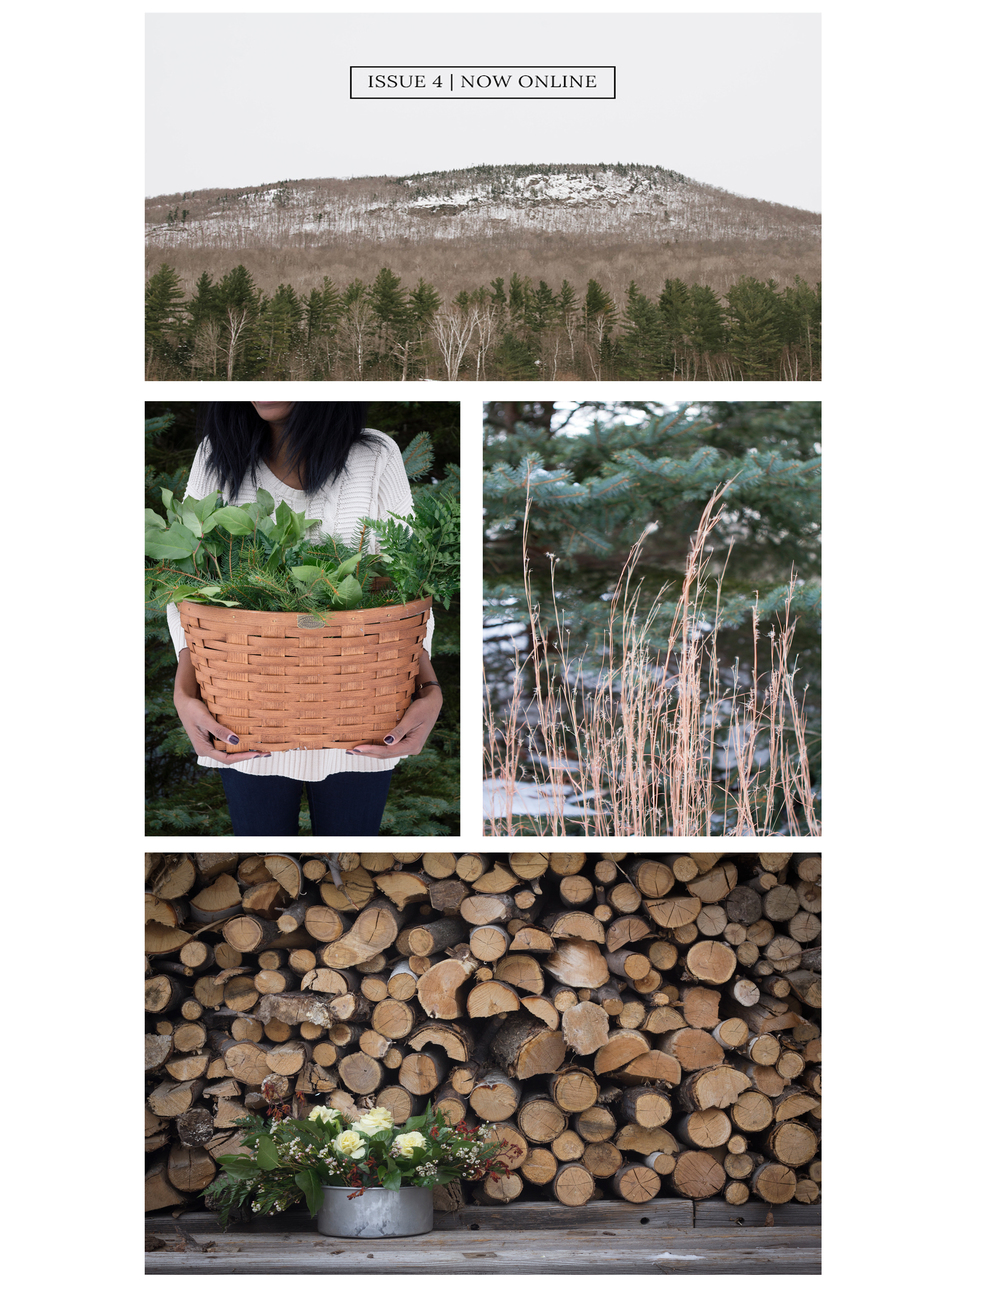 In January, t.e.l.l. New England asked me to do an evergreen story for their winter issue! It's unlike anything I'ver done but it has to be one of my favorite shoots thus far. Somerby Jones and I shot all the photos on her parent's land and I couldn't help but think they're living the New England dream--it doesn't get much better than a house tucked away in the woods. I could have stayed there forever. Thanks Somerby and t.e.l.l.! The issue is now available here! Photos by Somerby Jones